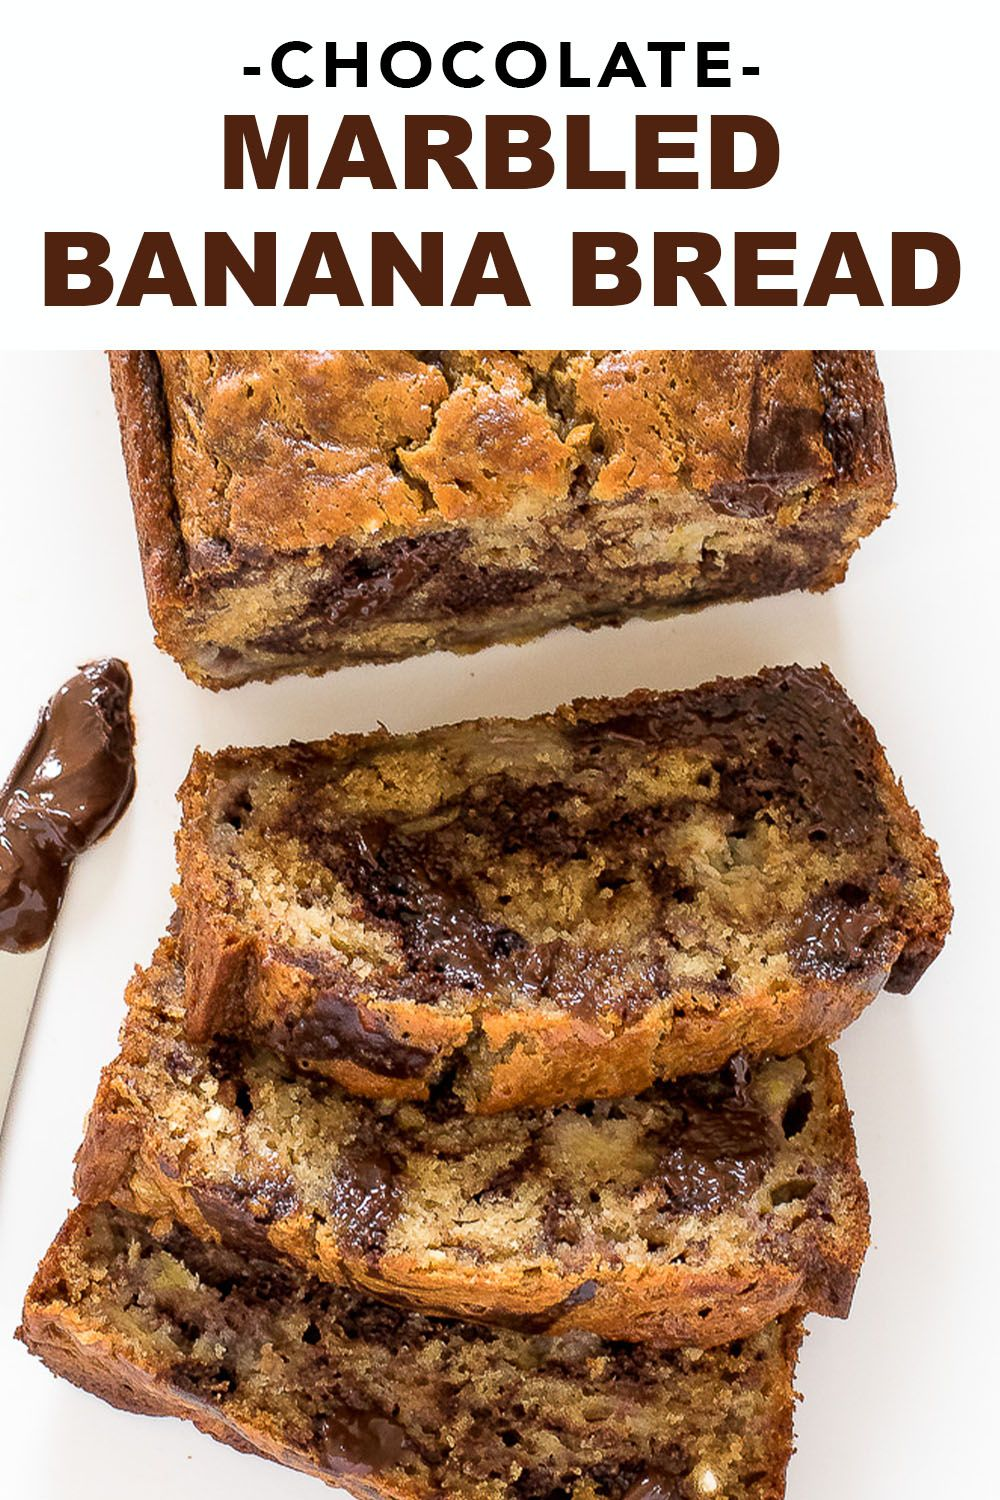 Marbled Chocolate Banana Bread Chef Savvy Recipe Chocolate Banana Bread Chocolate Banana Bread Recipe Chocolate Bread Recipe